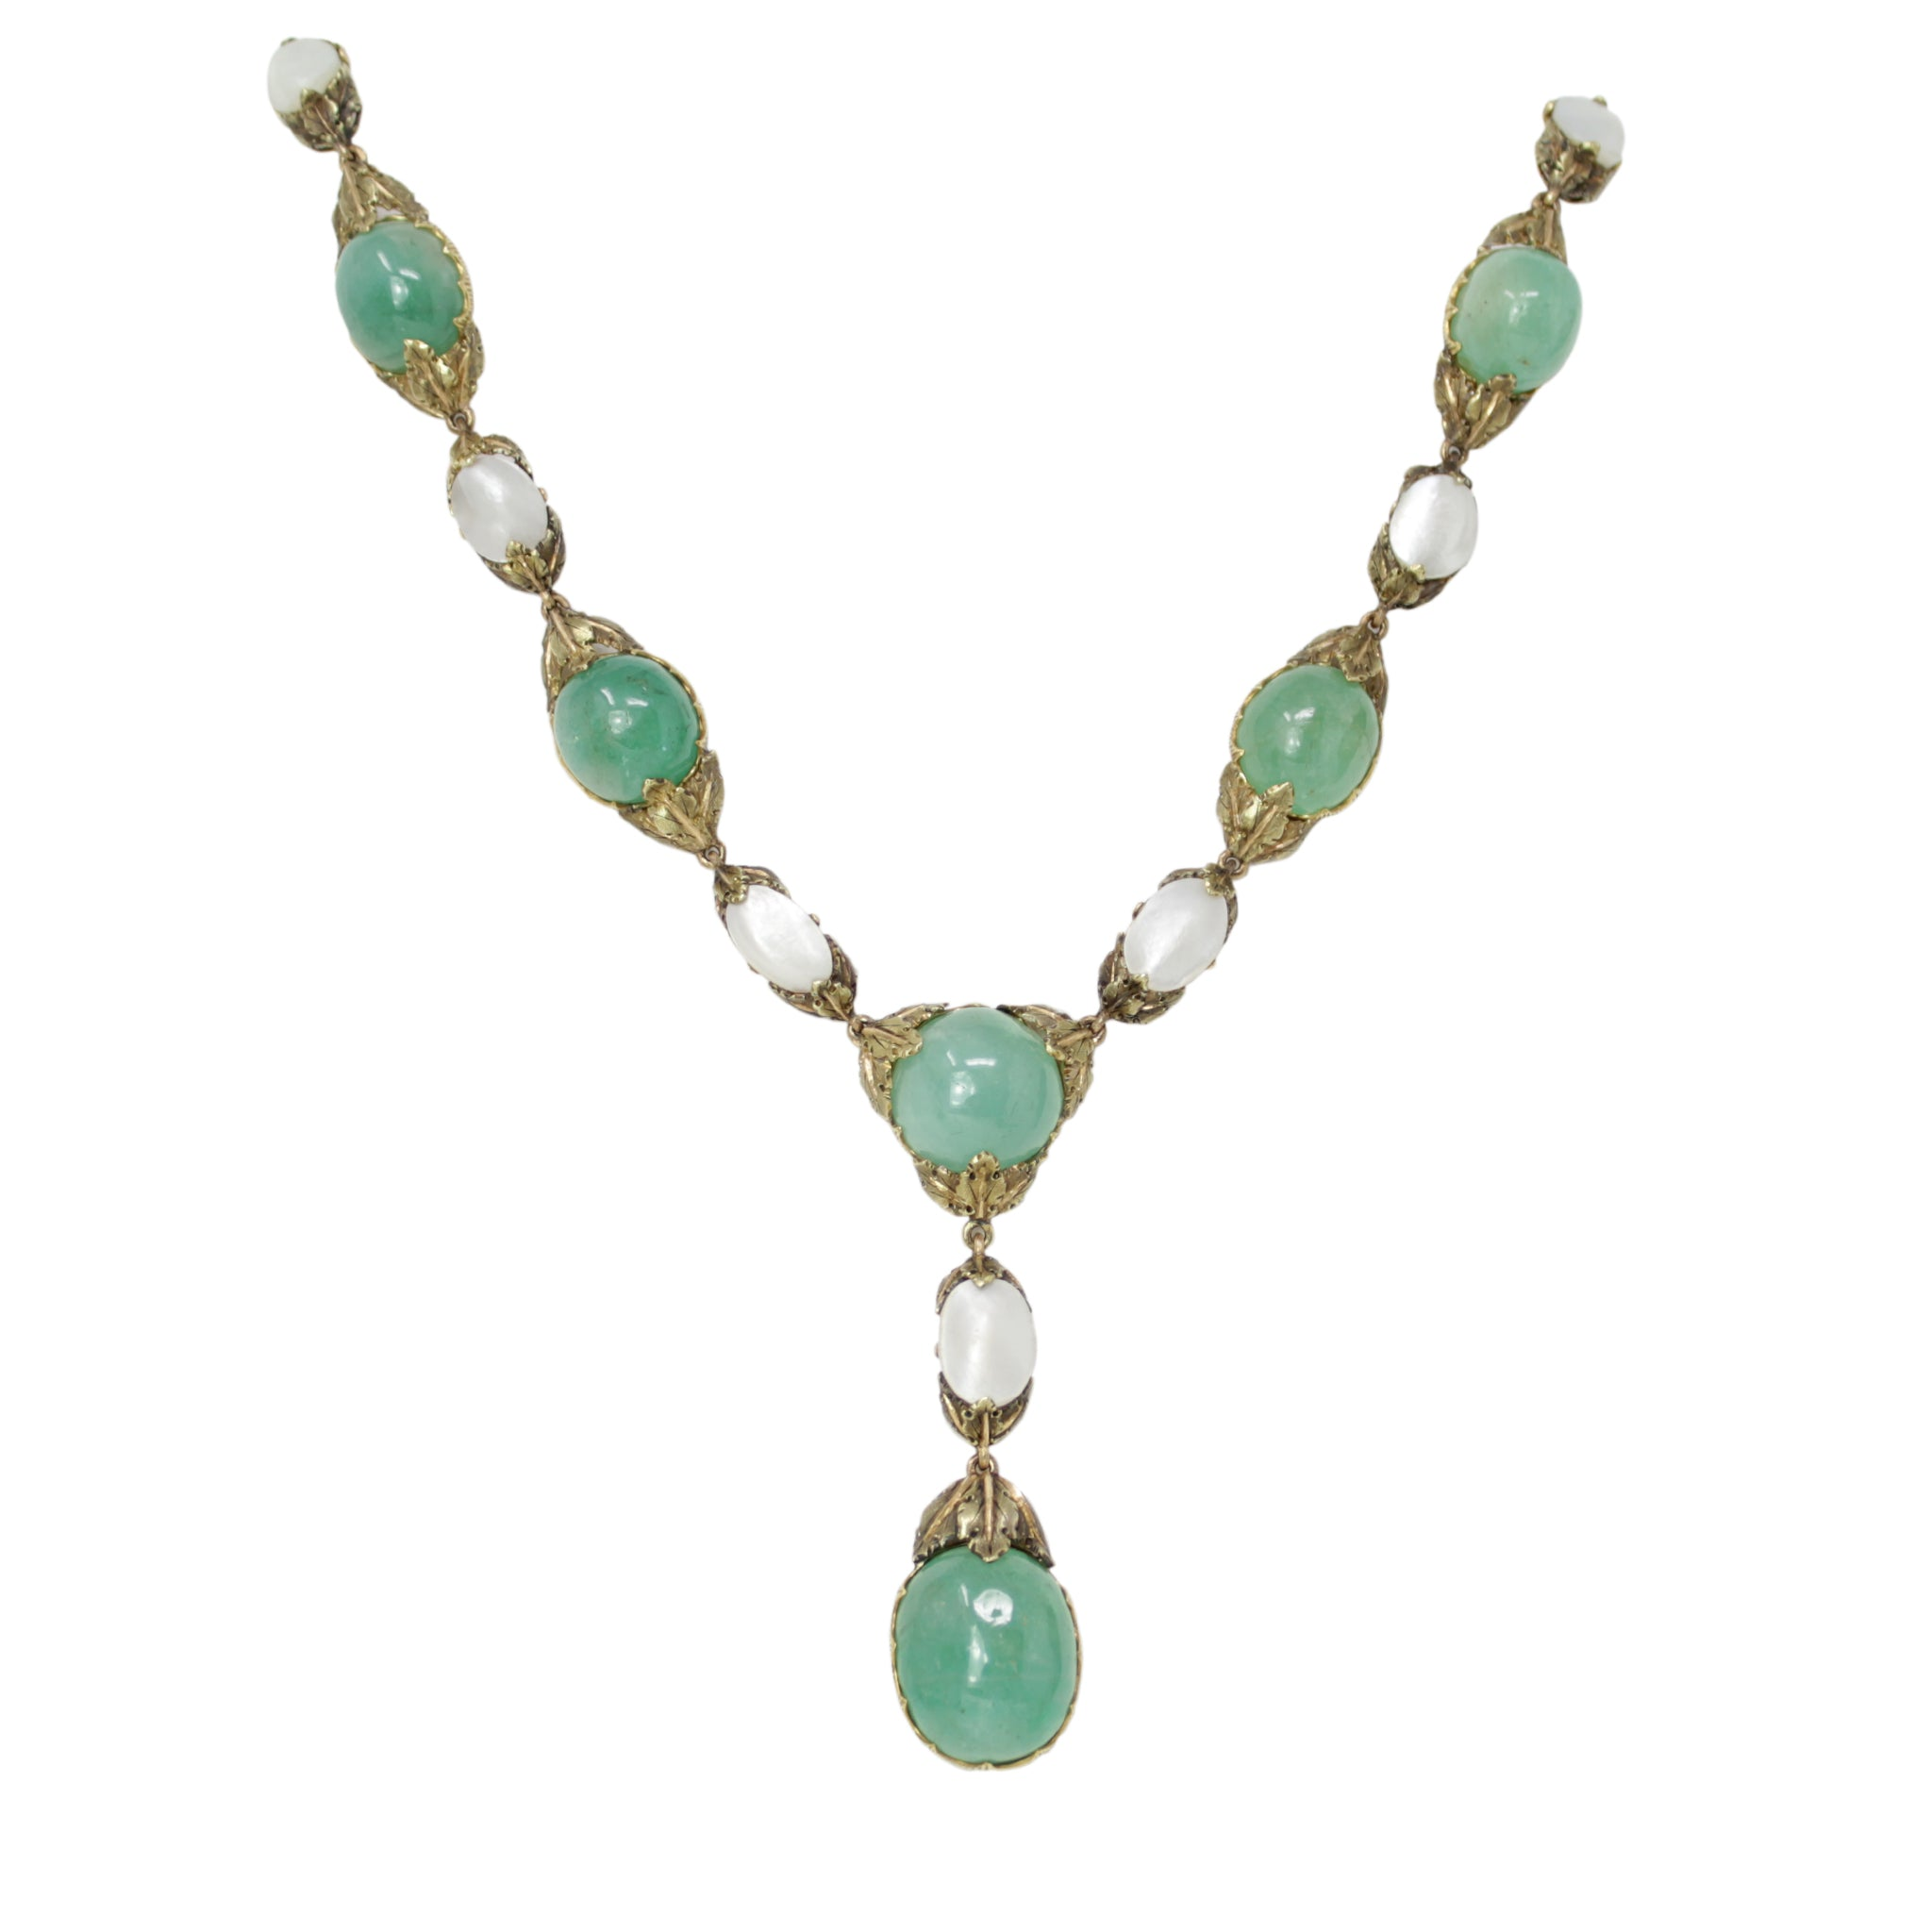 BUCCELLATI 18K Yellow Gold Emerald & Mother of Pearl Necklace